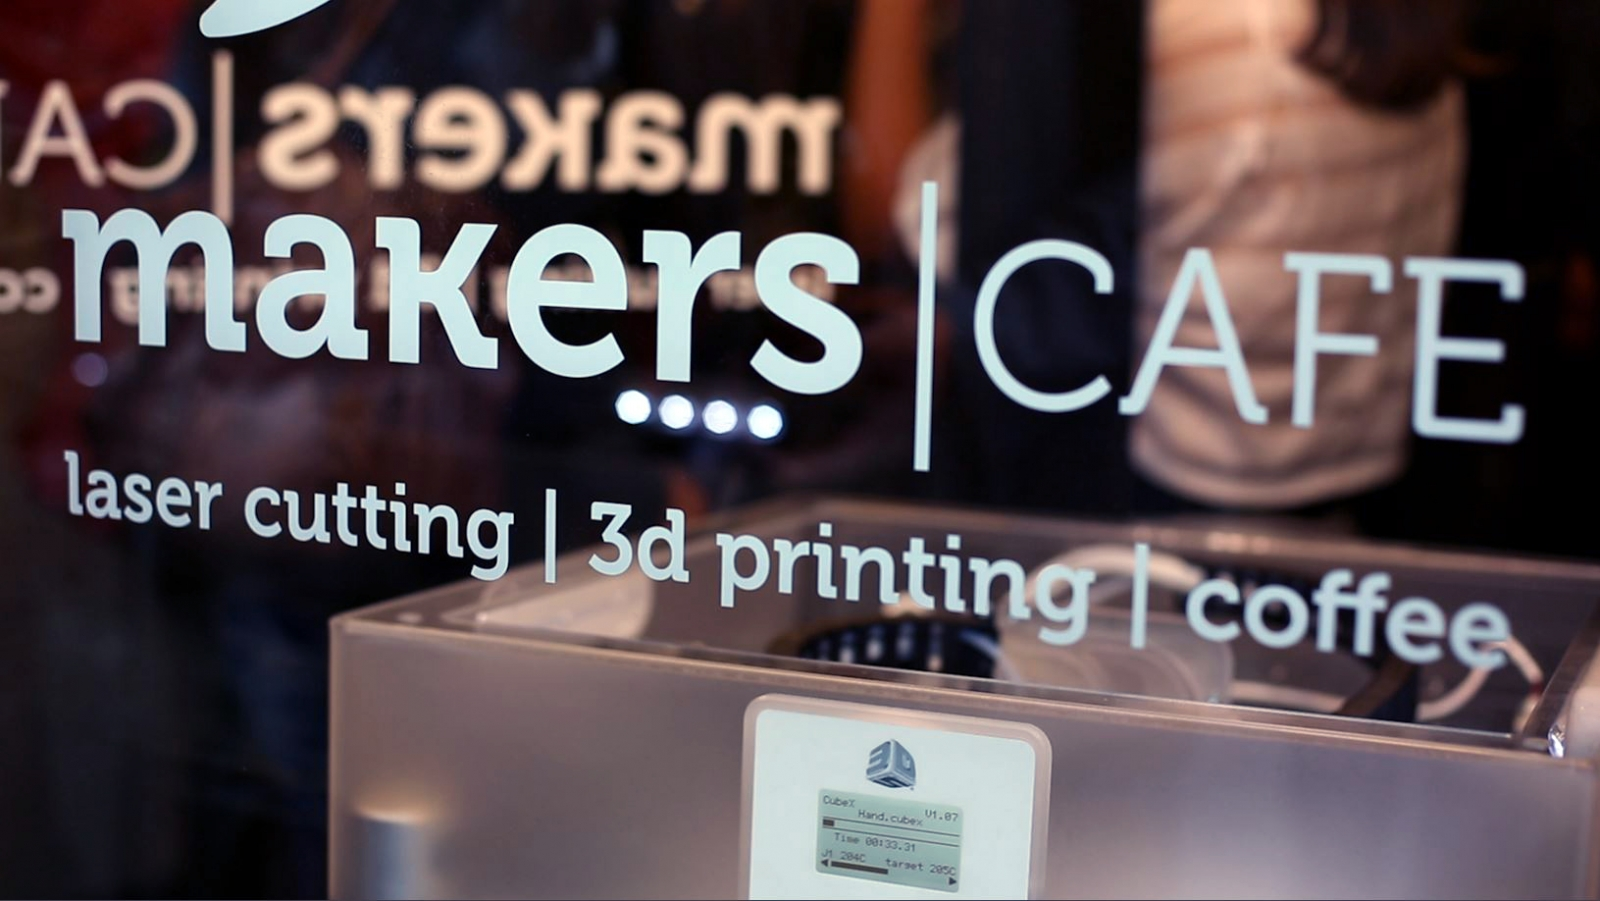 Makerscafe Uk S First 3d Printing Caf 233 Opens In East London